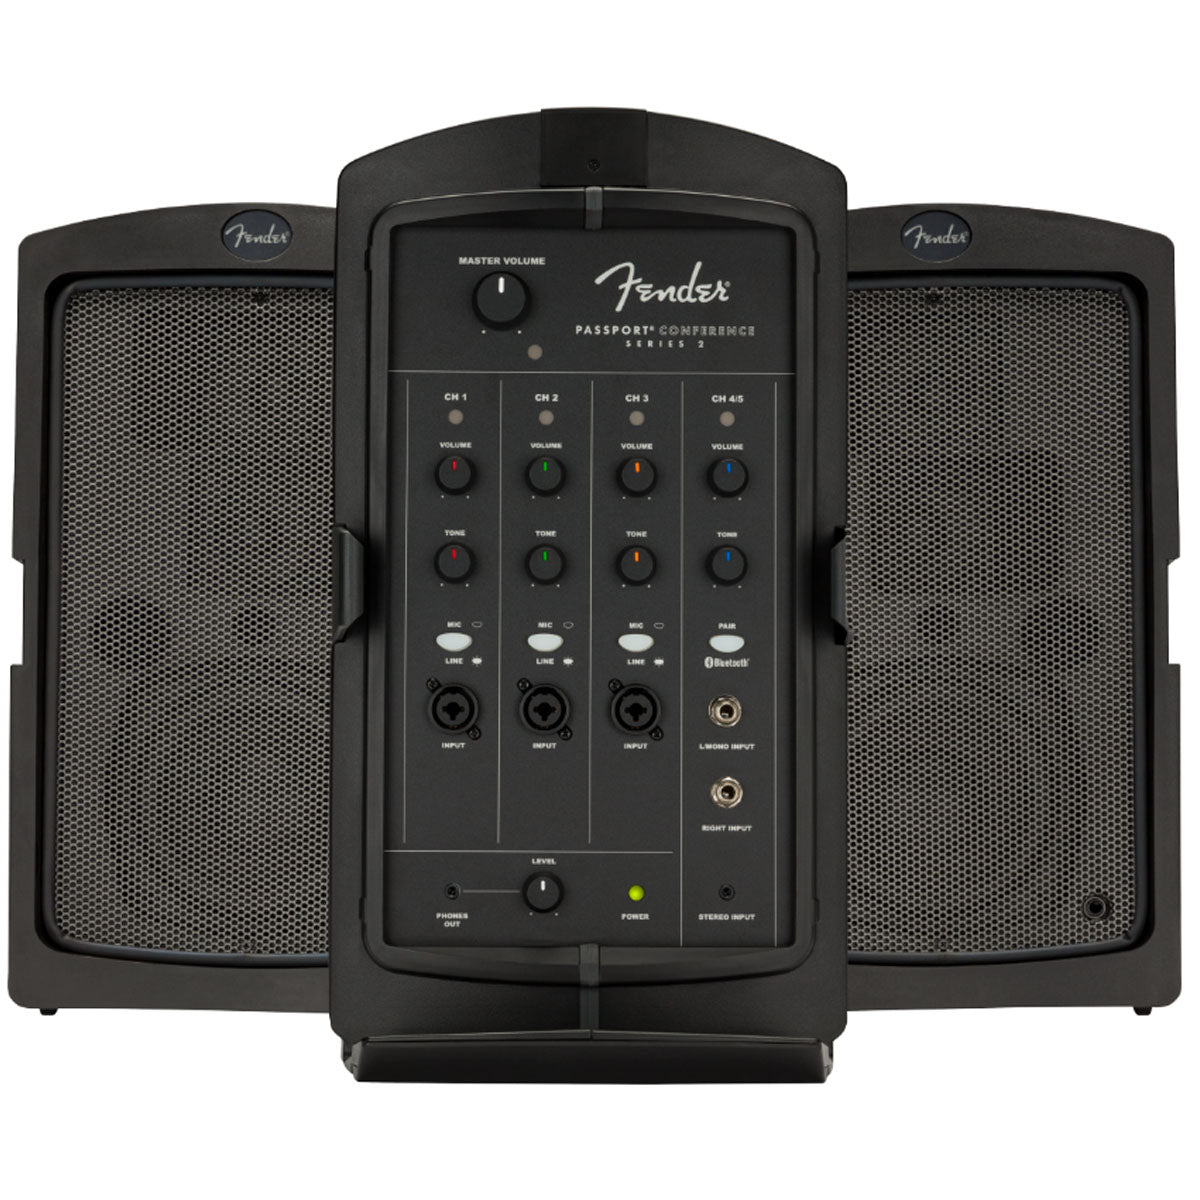 Fender Passport Conference Series 2 Portable PA System 175W w/ Bluetooth - 6942003900